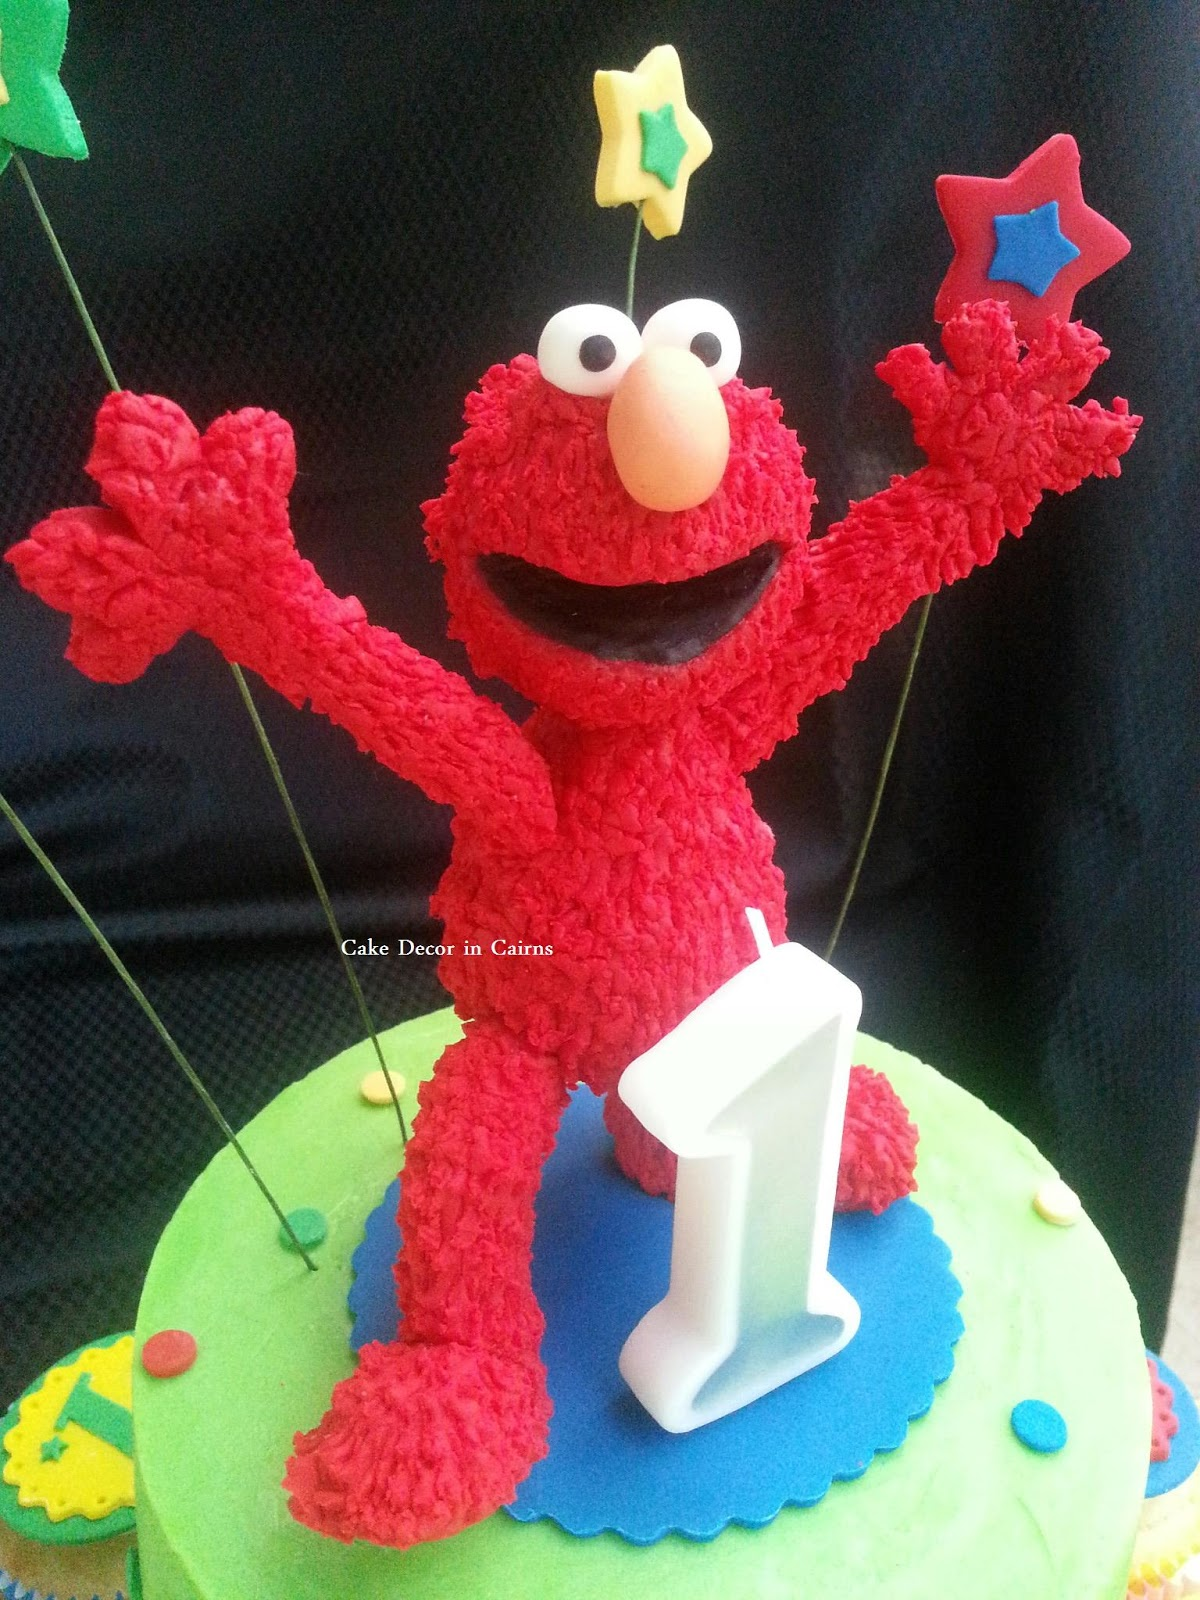 Cake Decor in Cairns How I made My Fondant Elmo Cake Topper